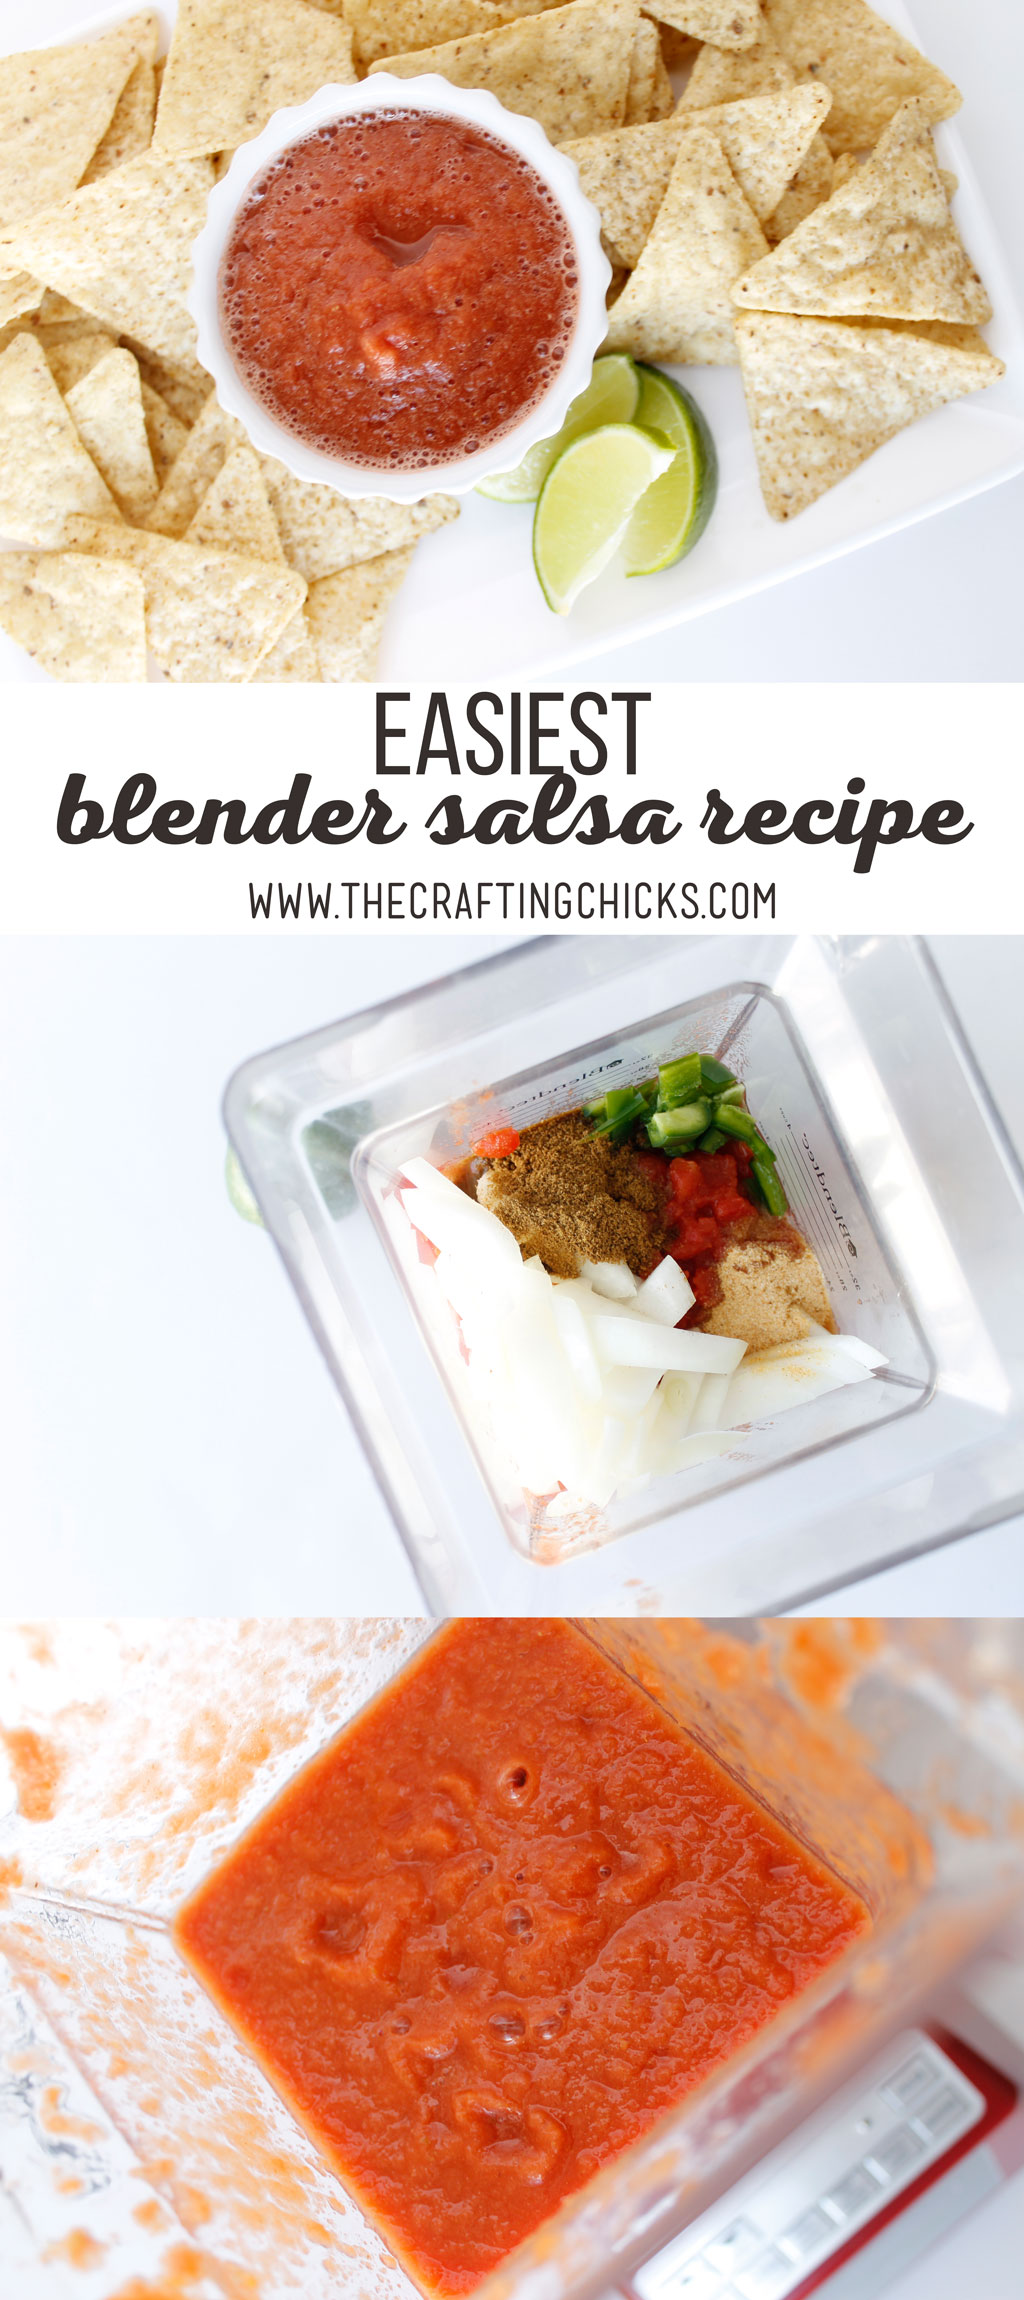 The Easiest Blender Salsa Recipe has become a staple at my house. This salsa can be made as chunky or puree as you want when you use a blender.